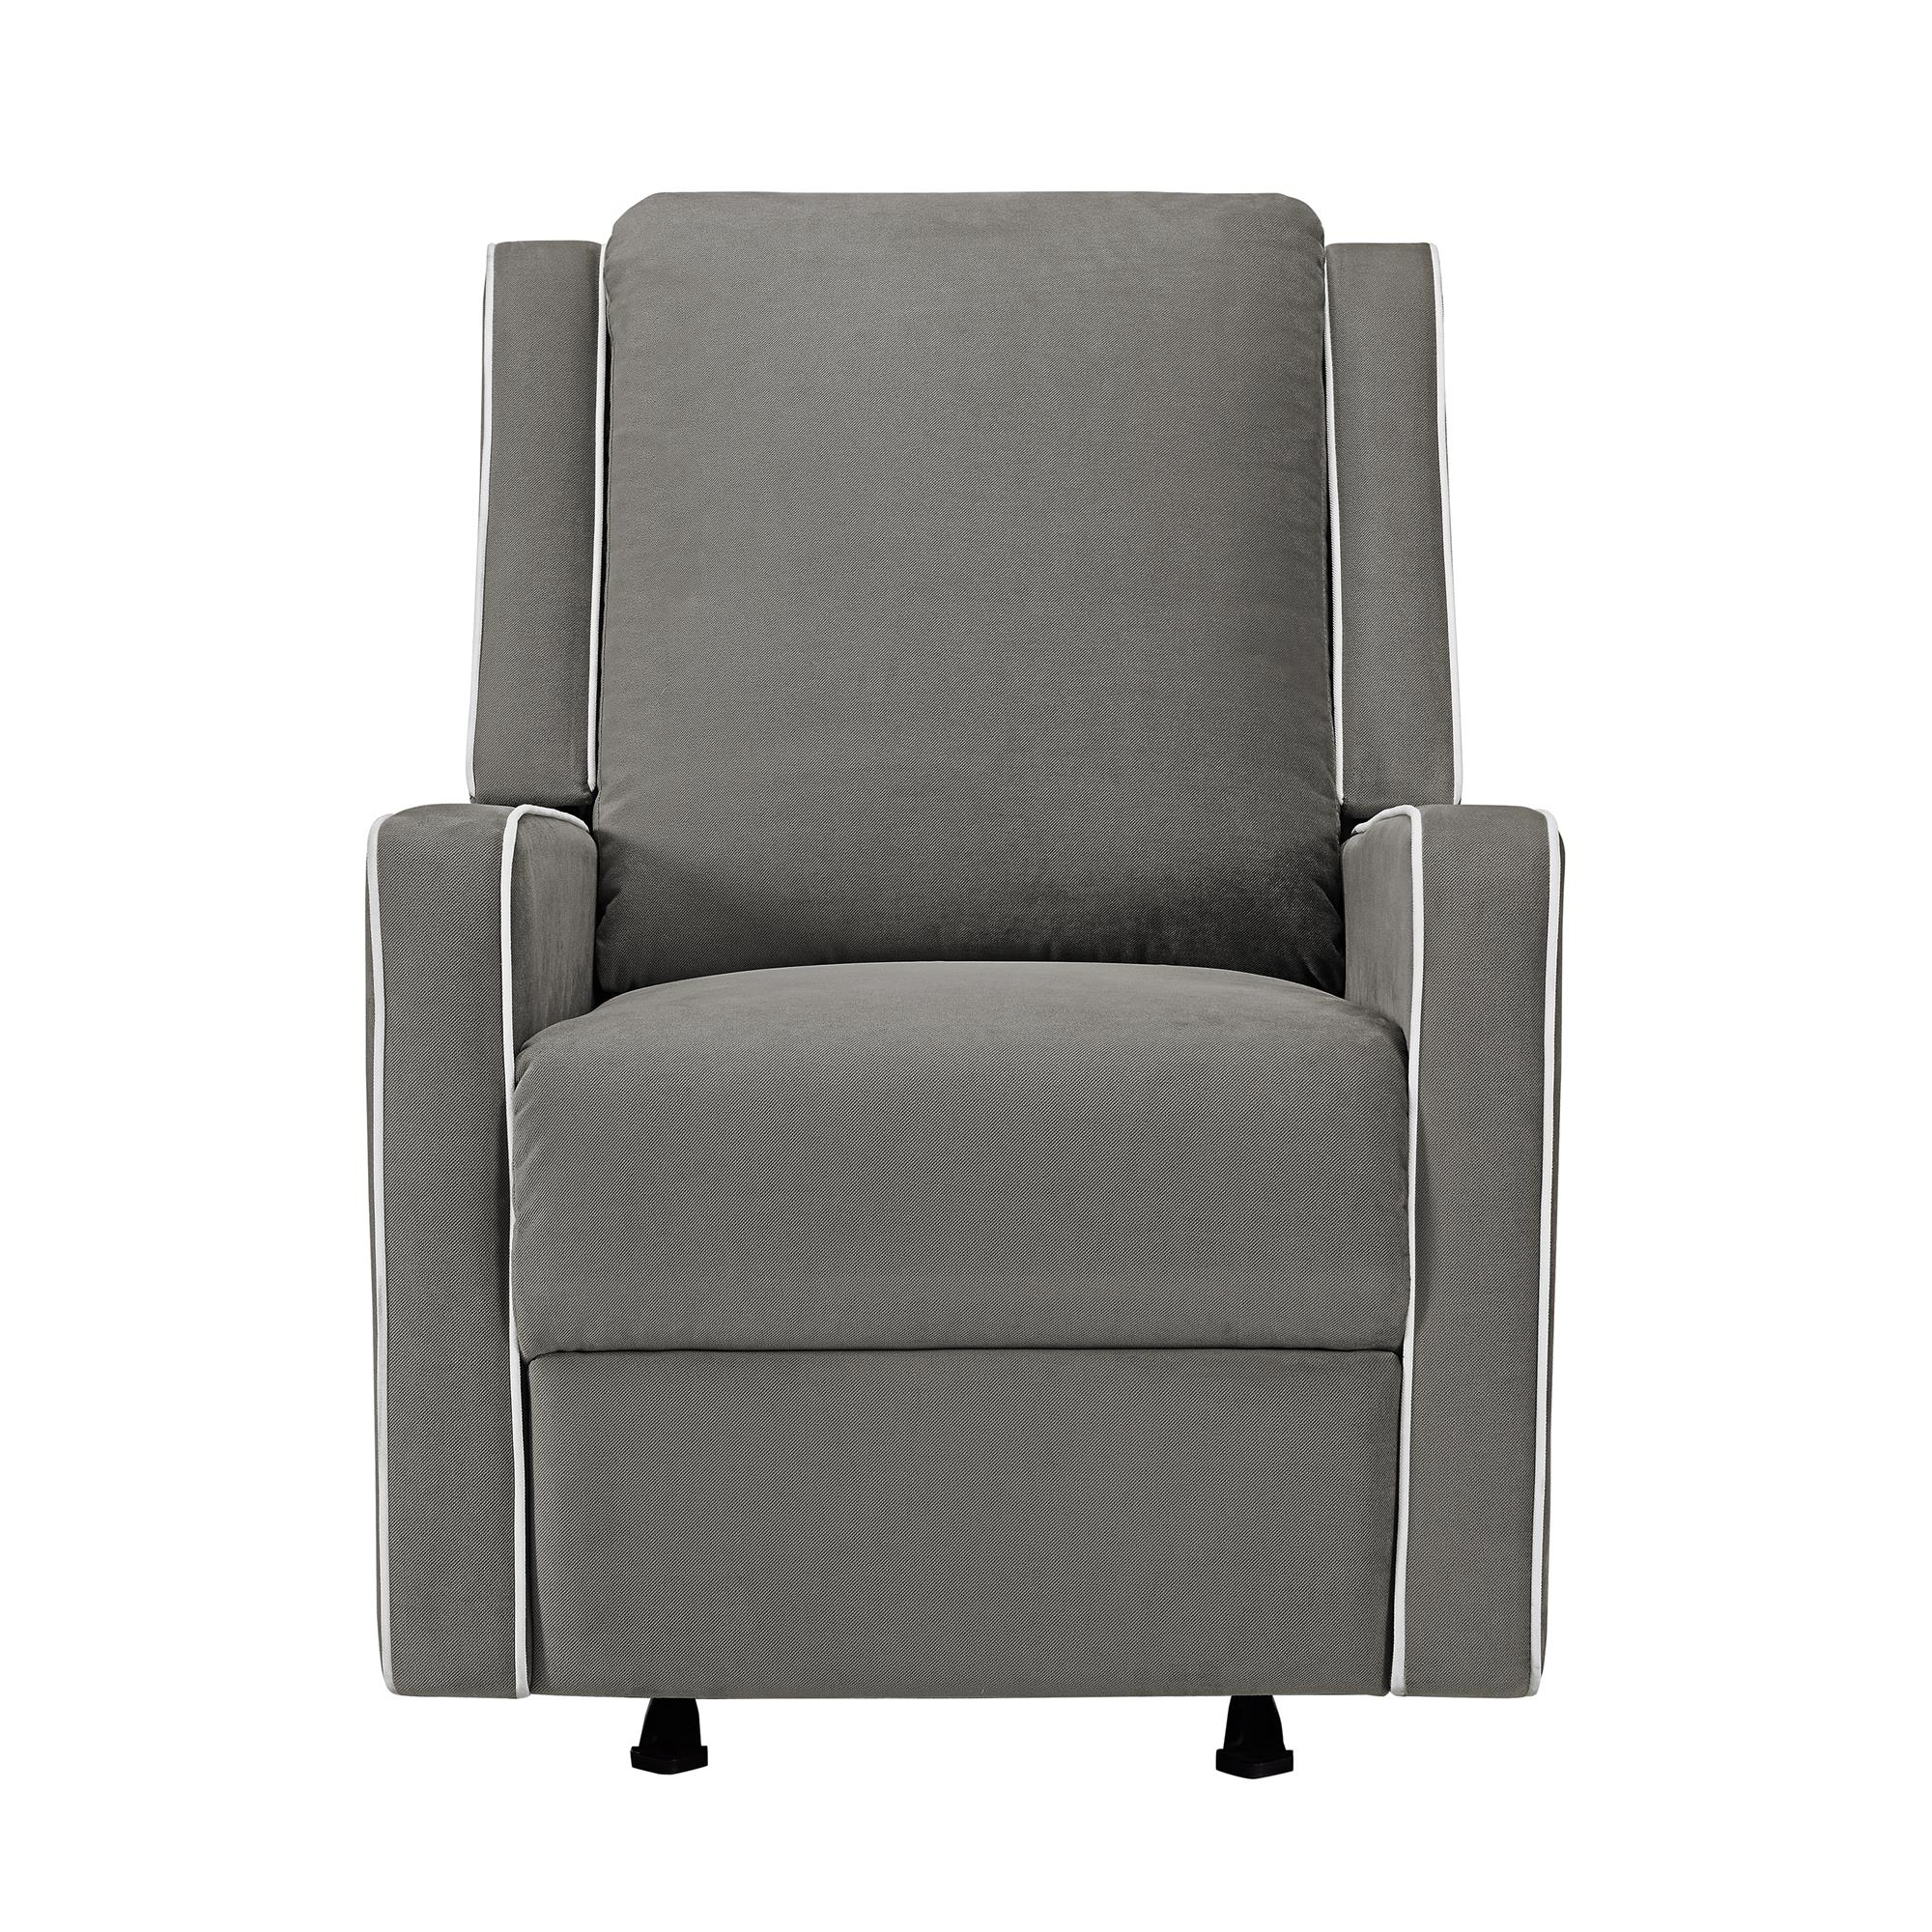 Abbey Swivel Glider Recliners Throughout Trendy Baby Relax Robyn Rocking Recliner, Graphite Grey – Walmart (View 6 of 20)